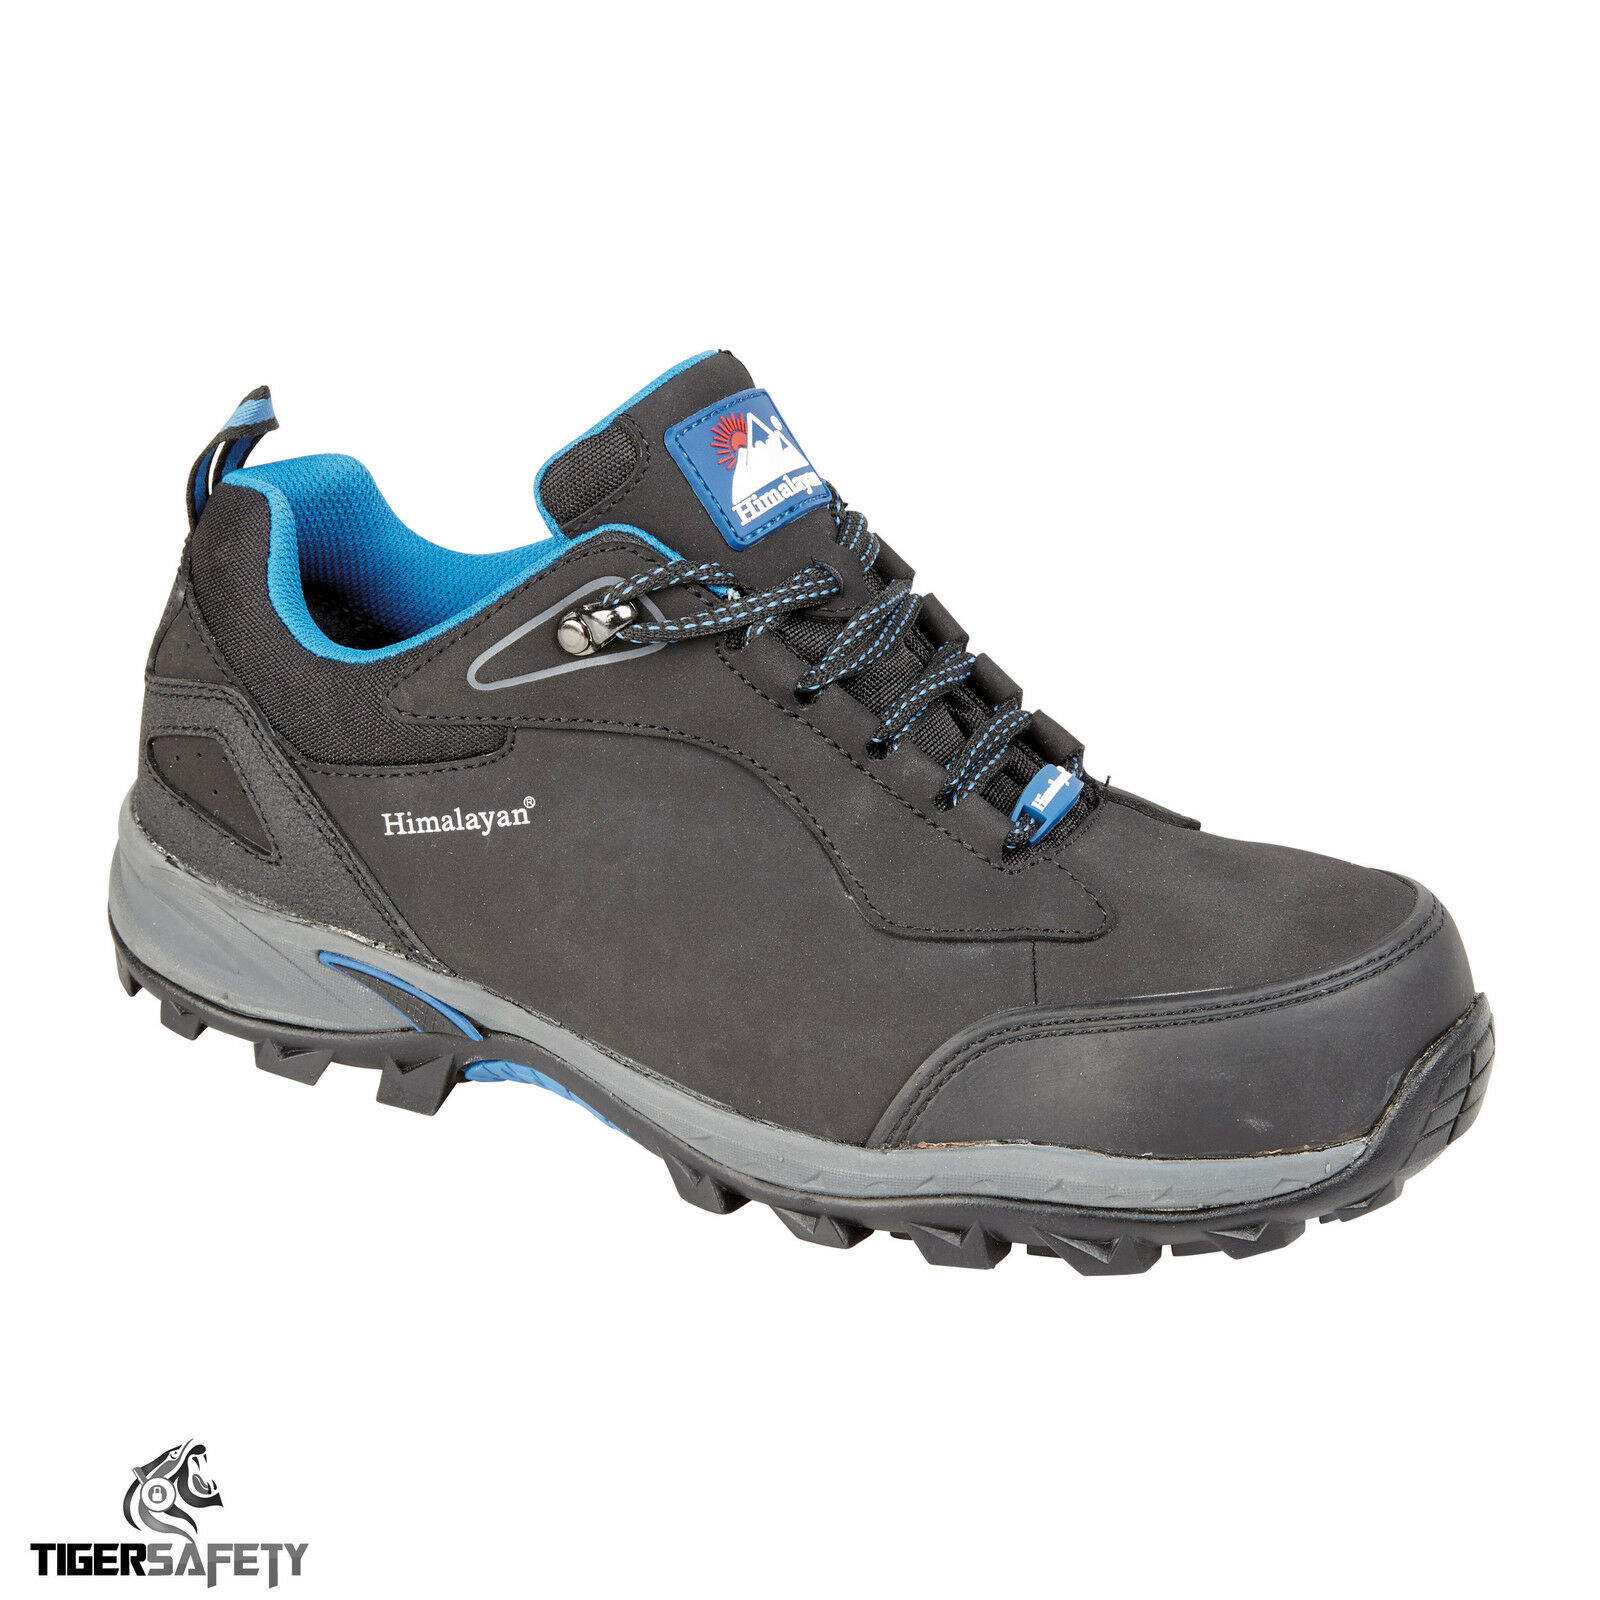 Himalayan 4039 S1P SRC Noir Leather Steel Toe Cap Sports Safety Trainers Chaussures